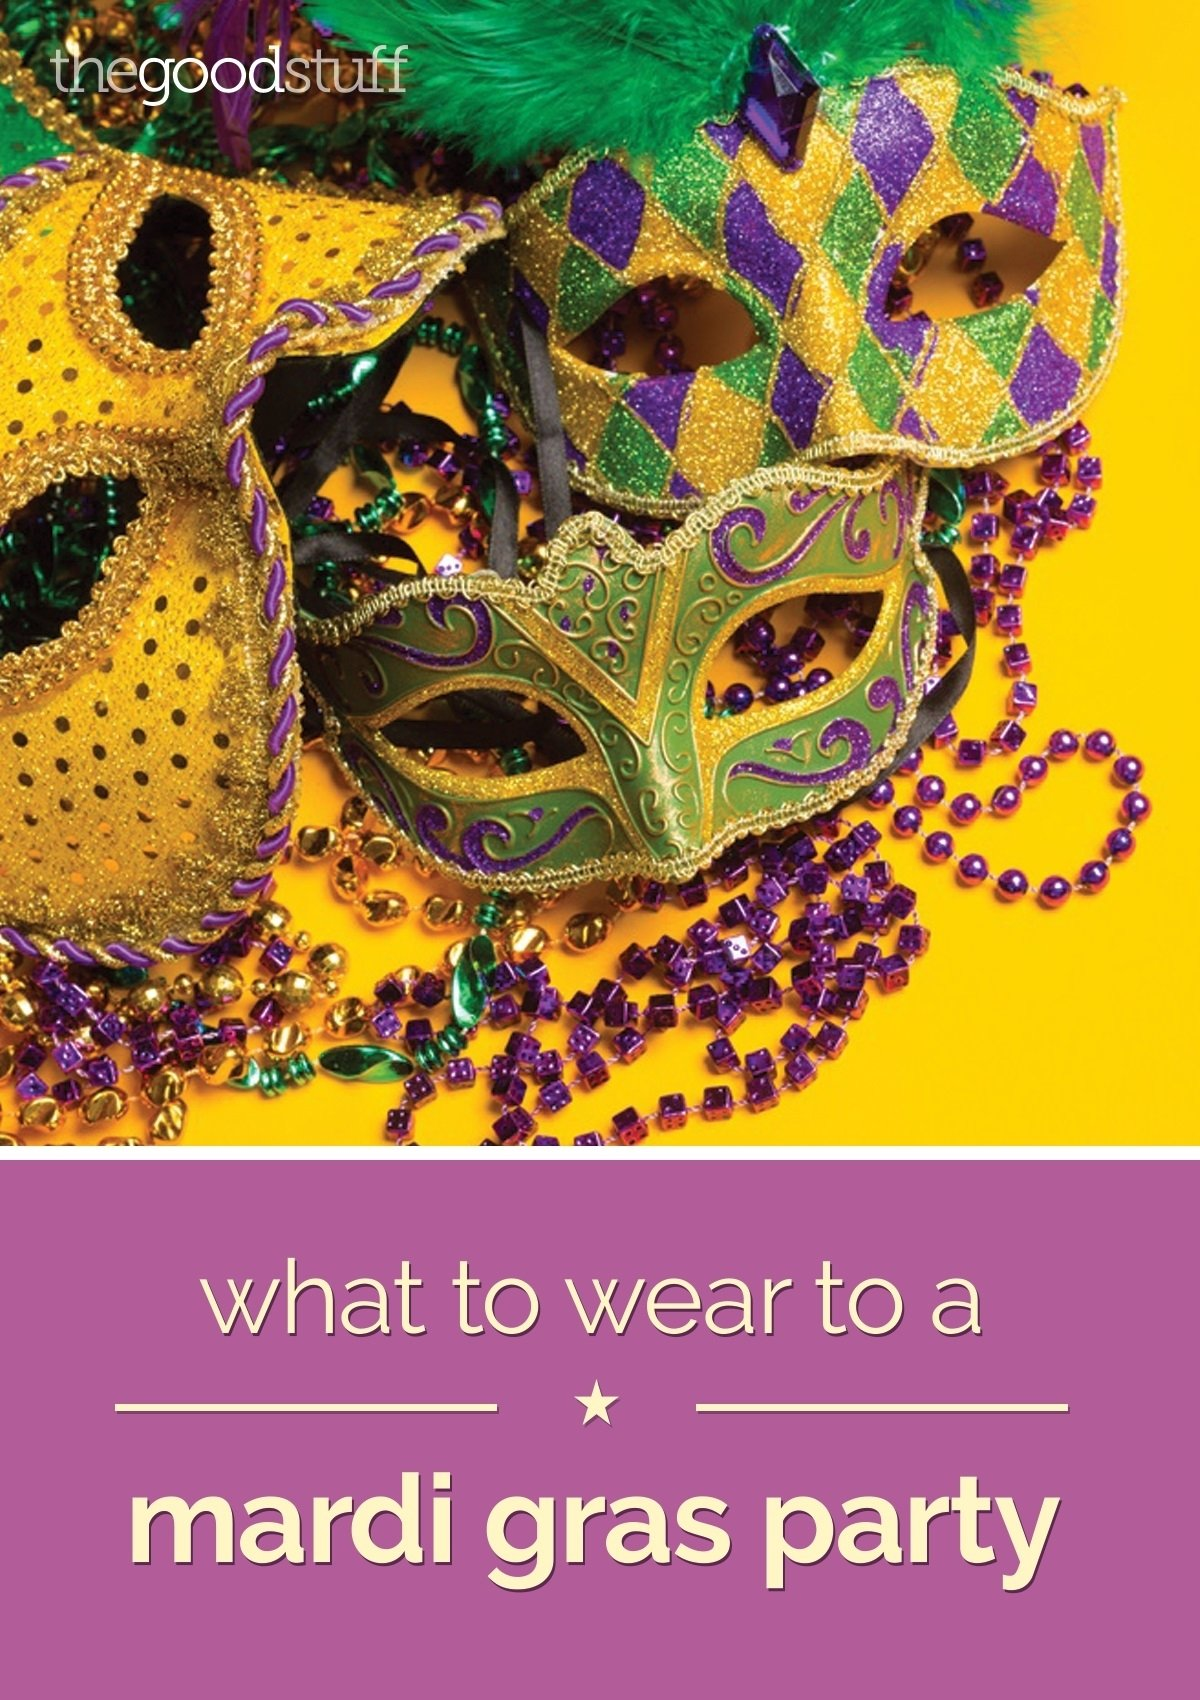 10 Great Mardi Gras Party Outfit Ideas what to wear to a mardi gras party thegoodstuff 2020